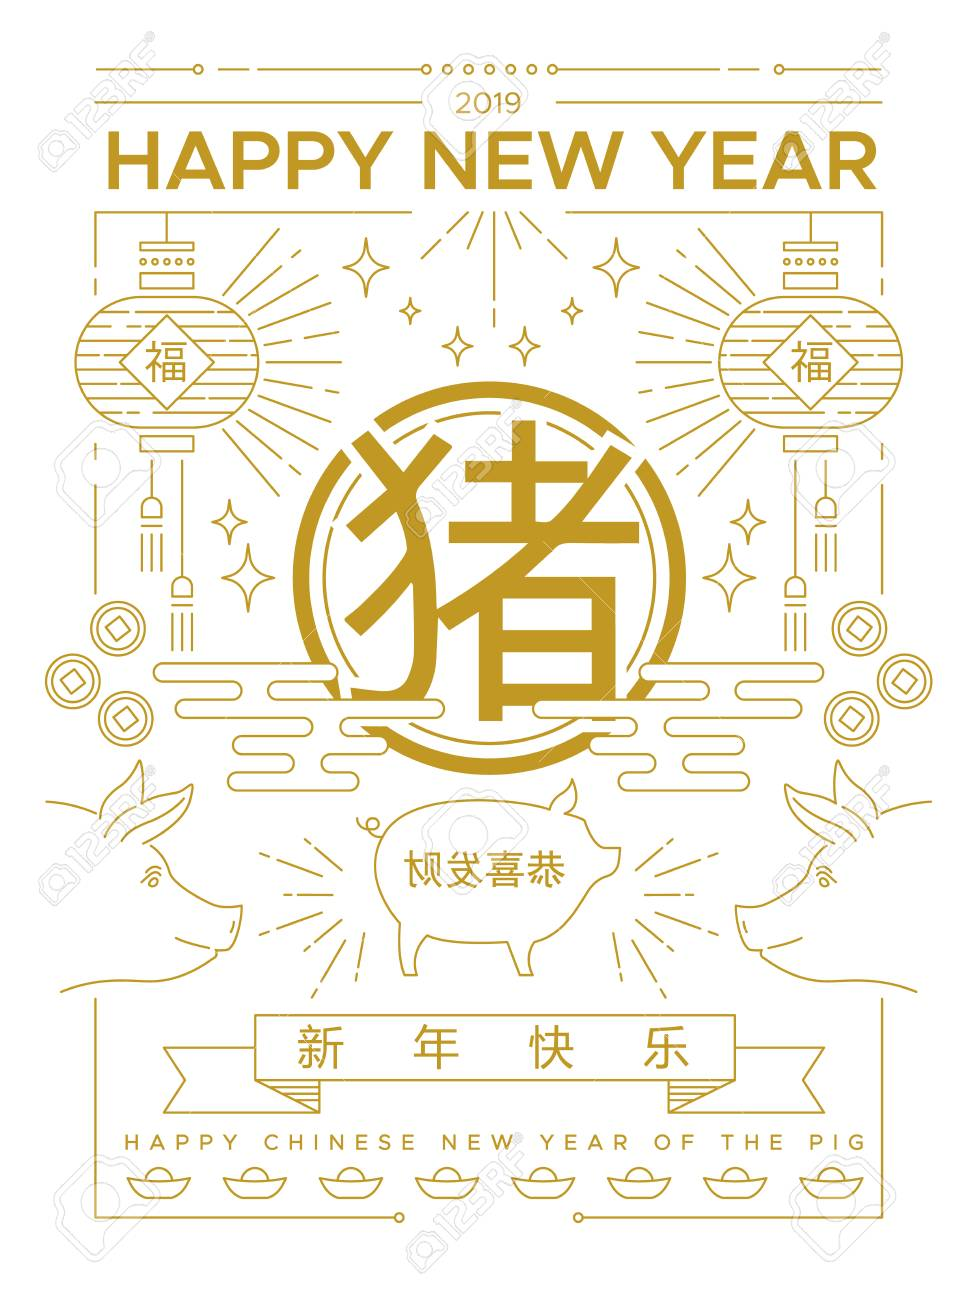 Chinese New Year 2019 Greeting Card Illustration In Traditional